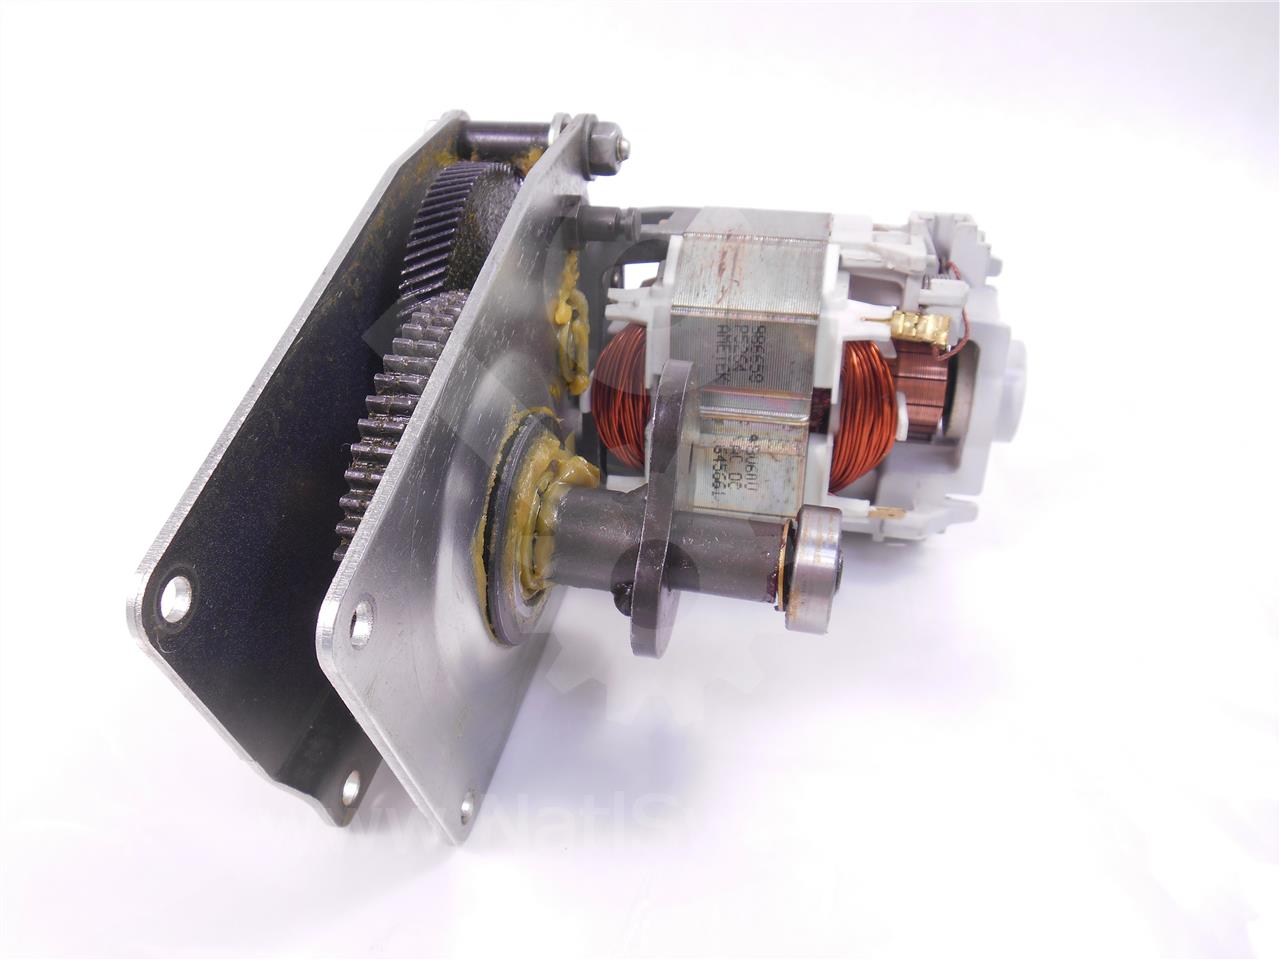 46040-113-50 Square D 48VDC CHARGE MOTOR ASSEMBLY FOR VR VAD-5